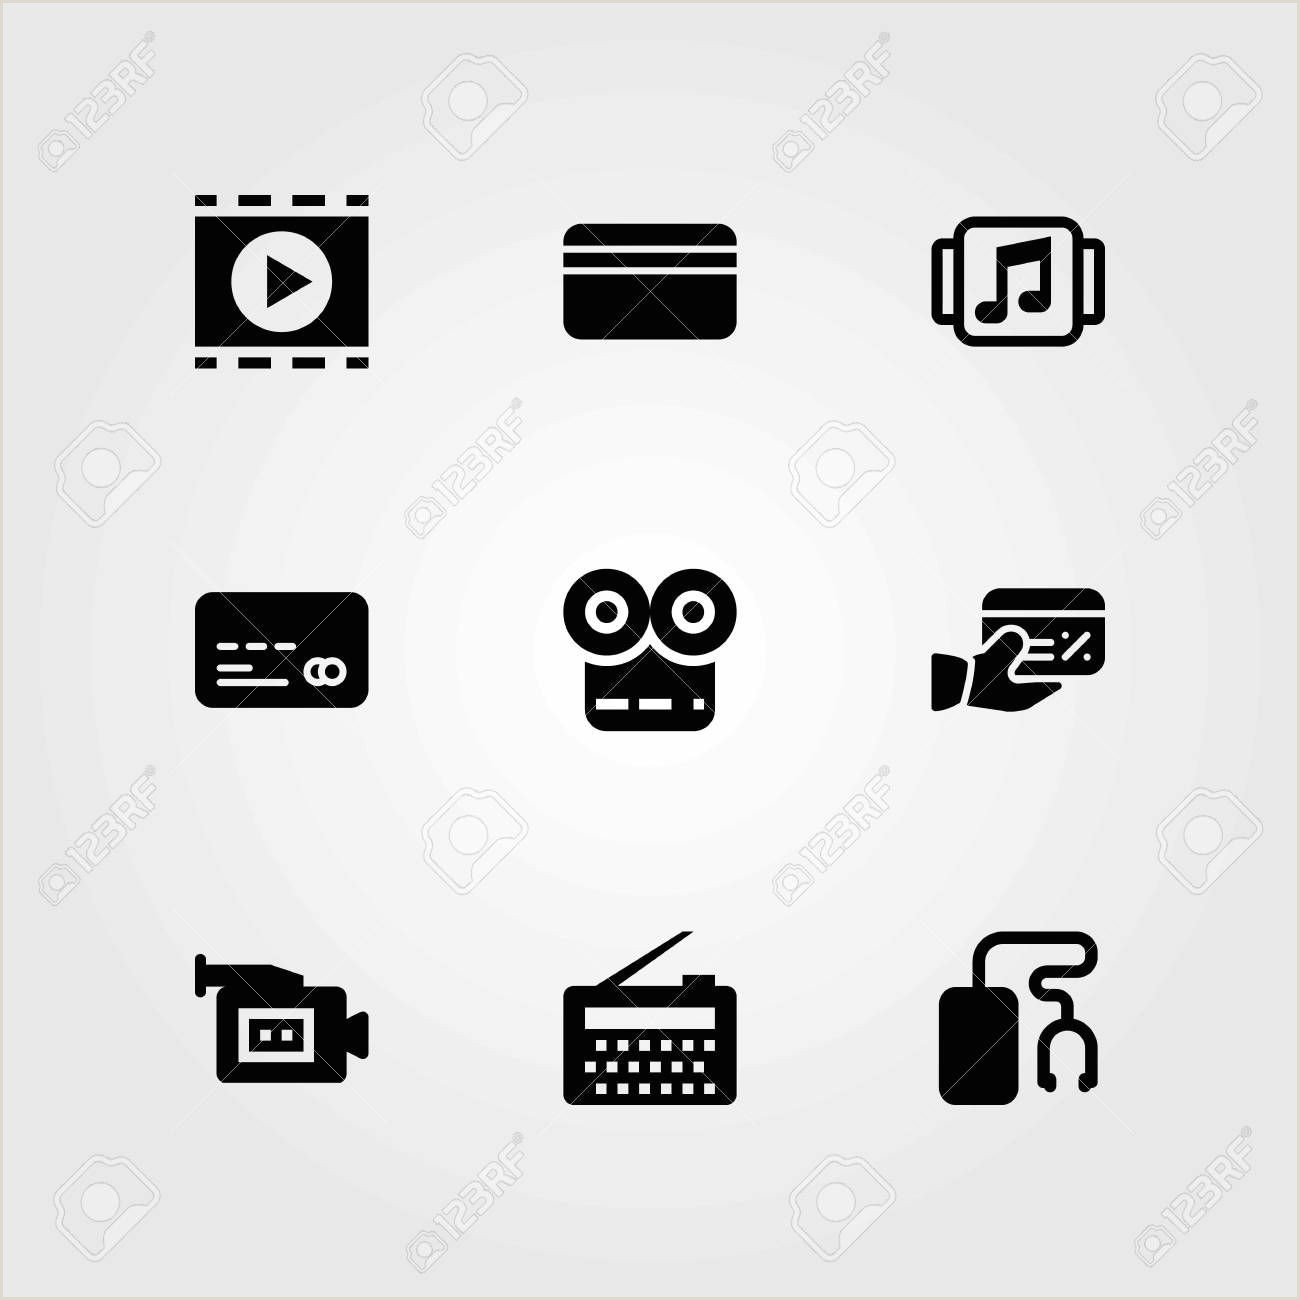 Credit Card Logos Black And White Technology Vector Icons Set Credit Card Video Camera And